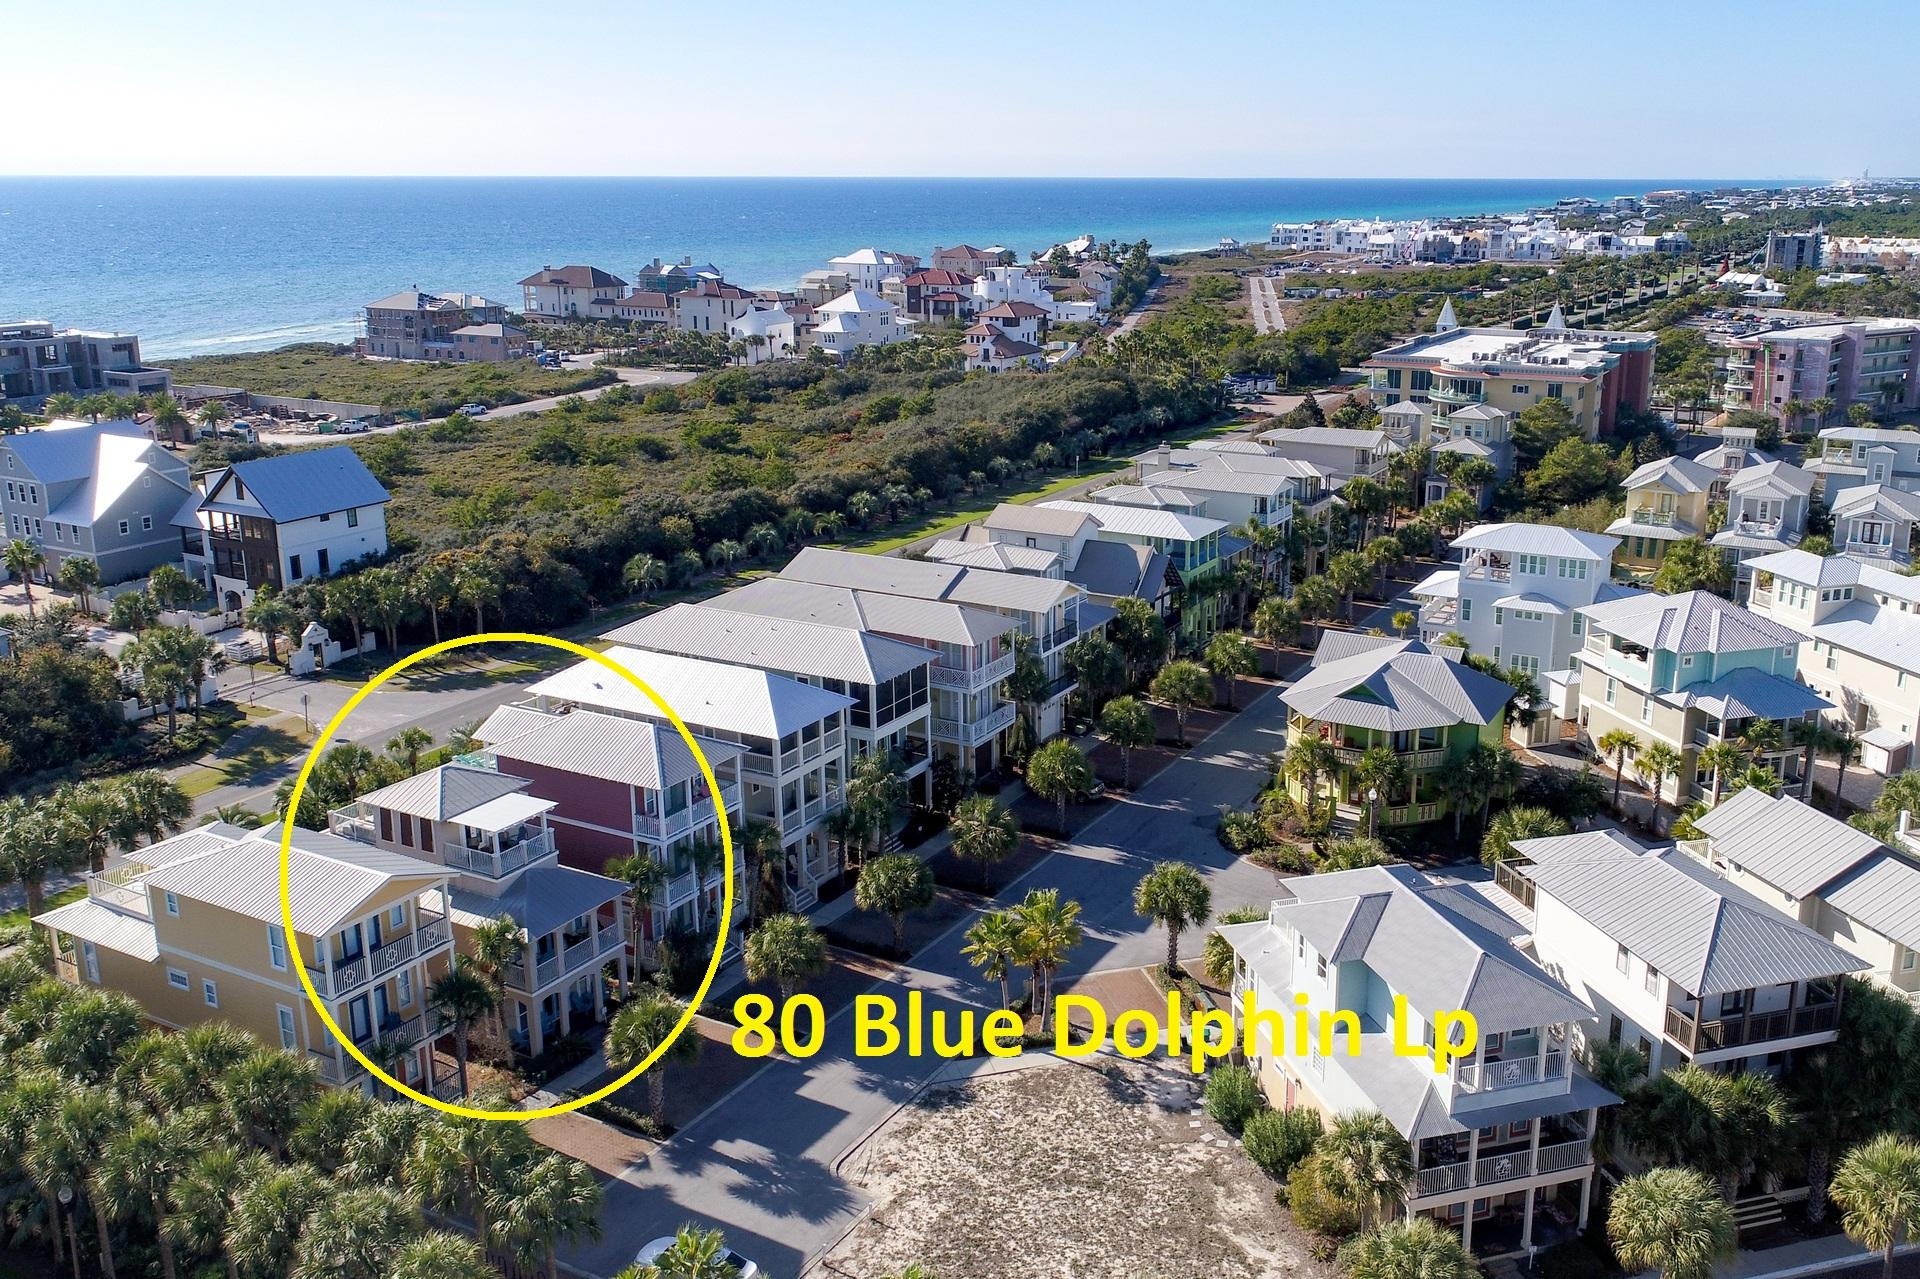 80 Blue Dolphin Loop  Photo 35